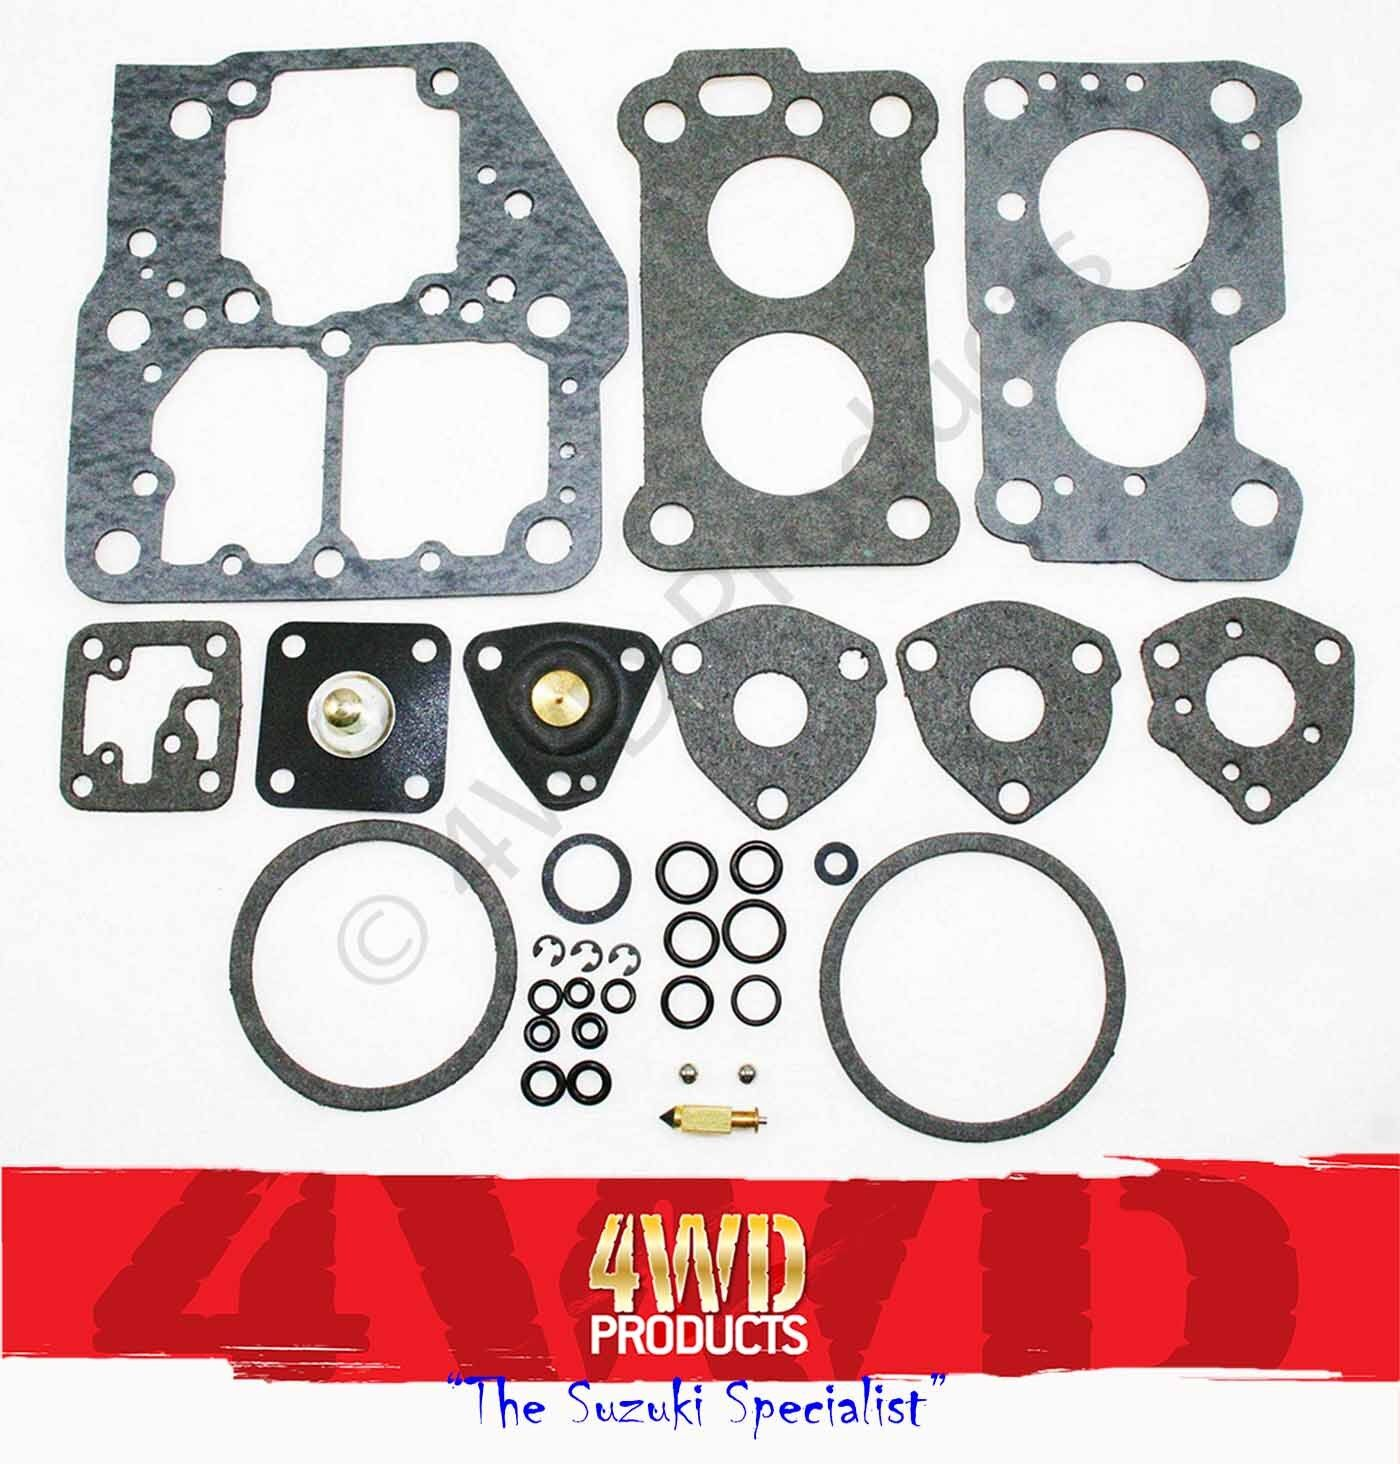 Carburettor Overhaul kit - Suzuki Vitara 1.6 G16A (88-94)